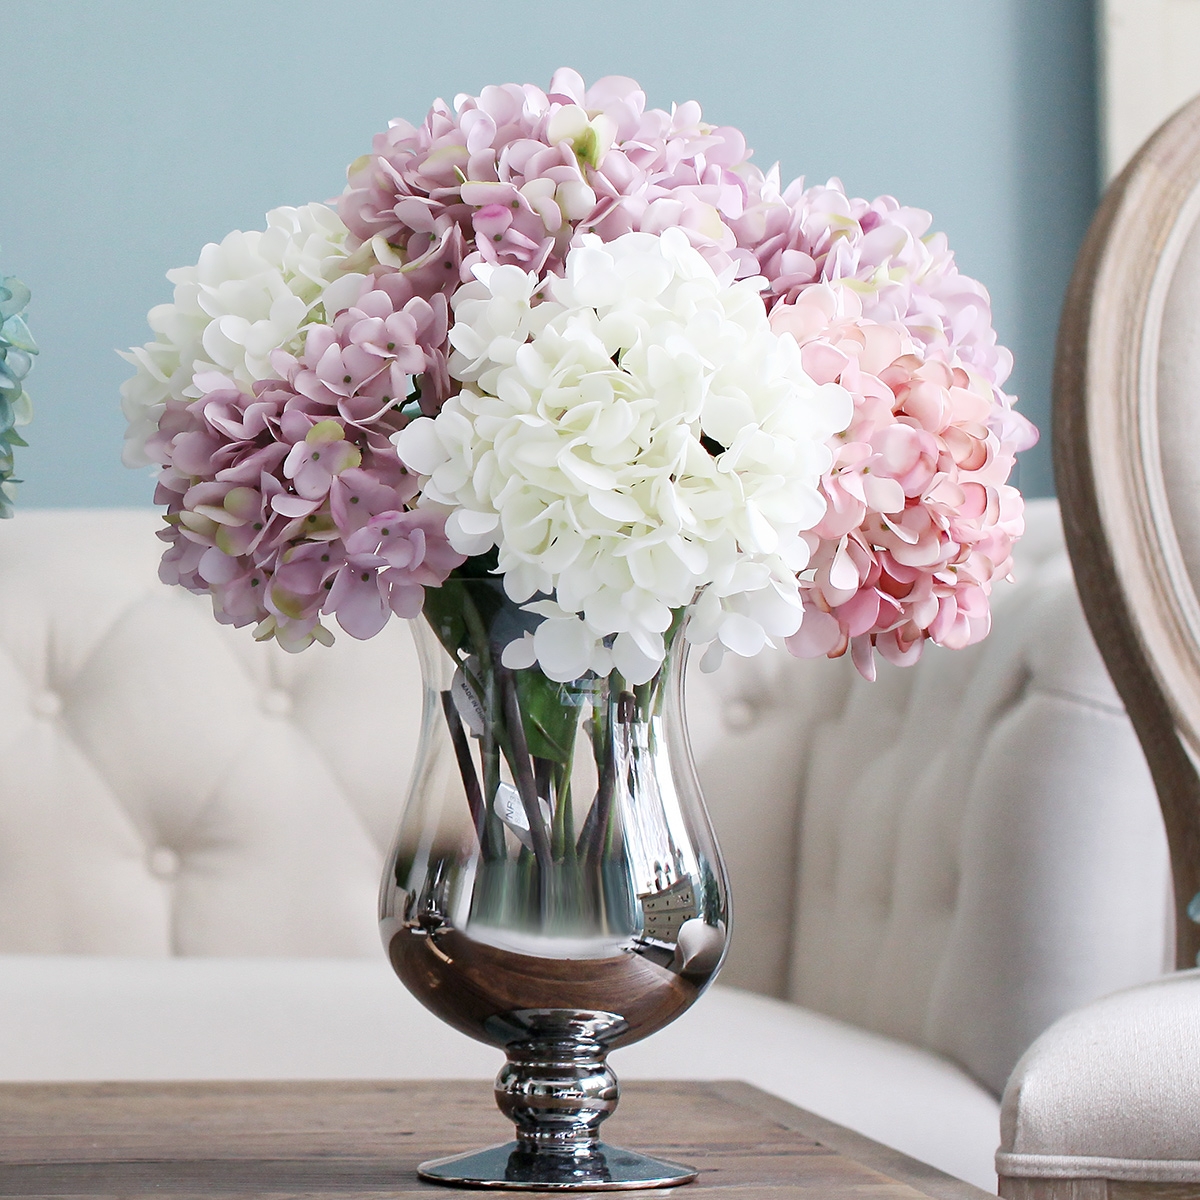 Popular Wedding Centerpieces Hydrangeas Buy Cheap Wedding Centerpieces Hydrangeas Lots From